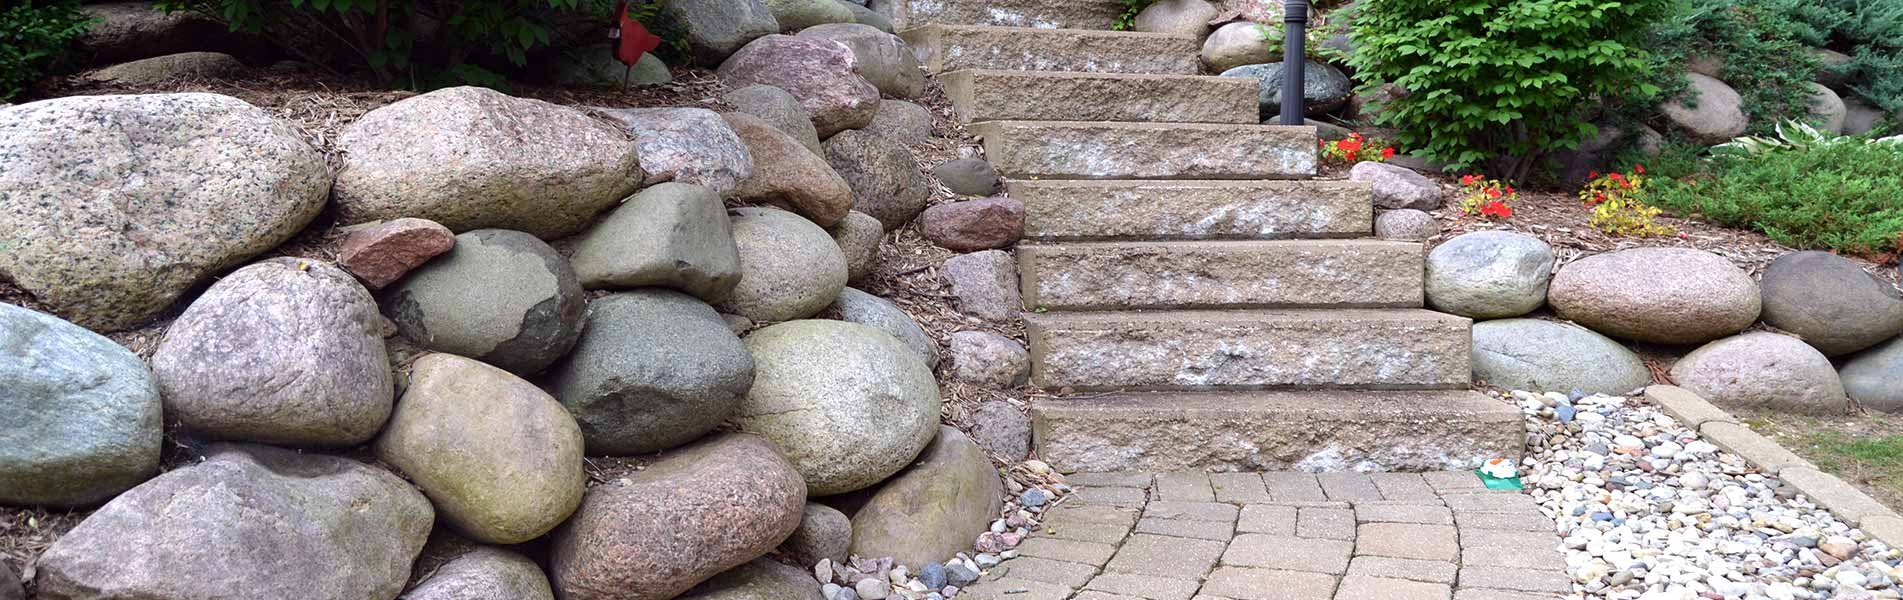 Sidewalk & Walkway Installation Services by B&C Pavers and Landscaping Inc.